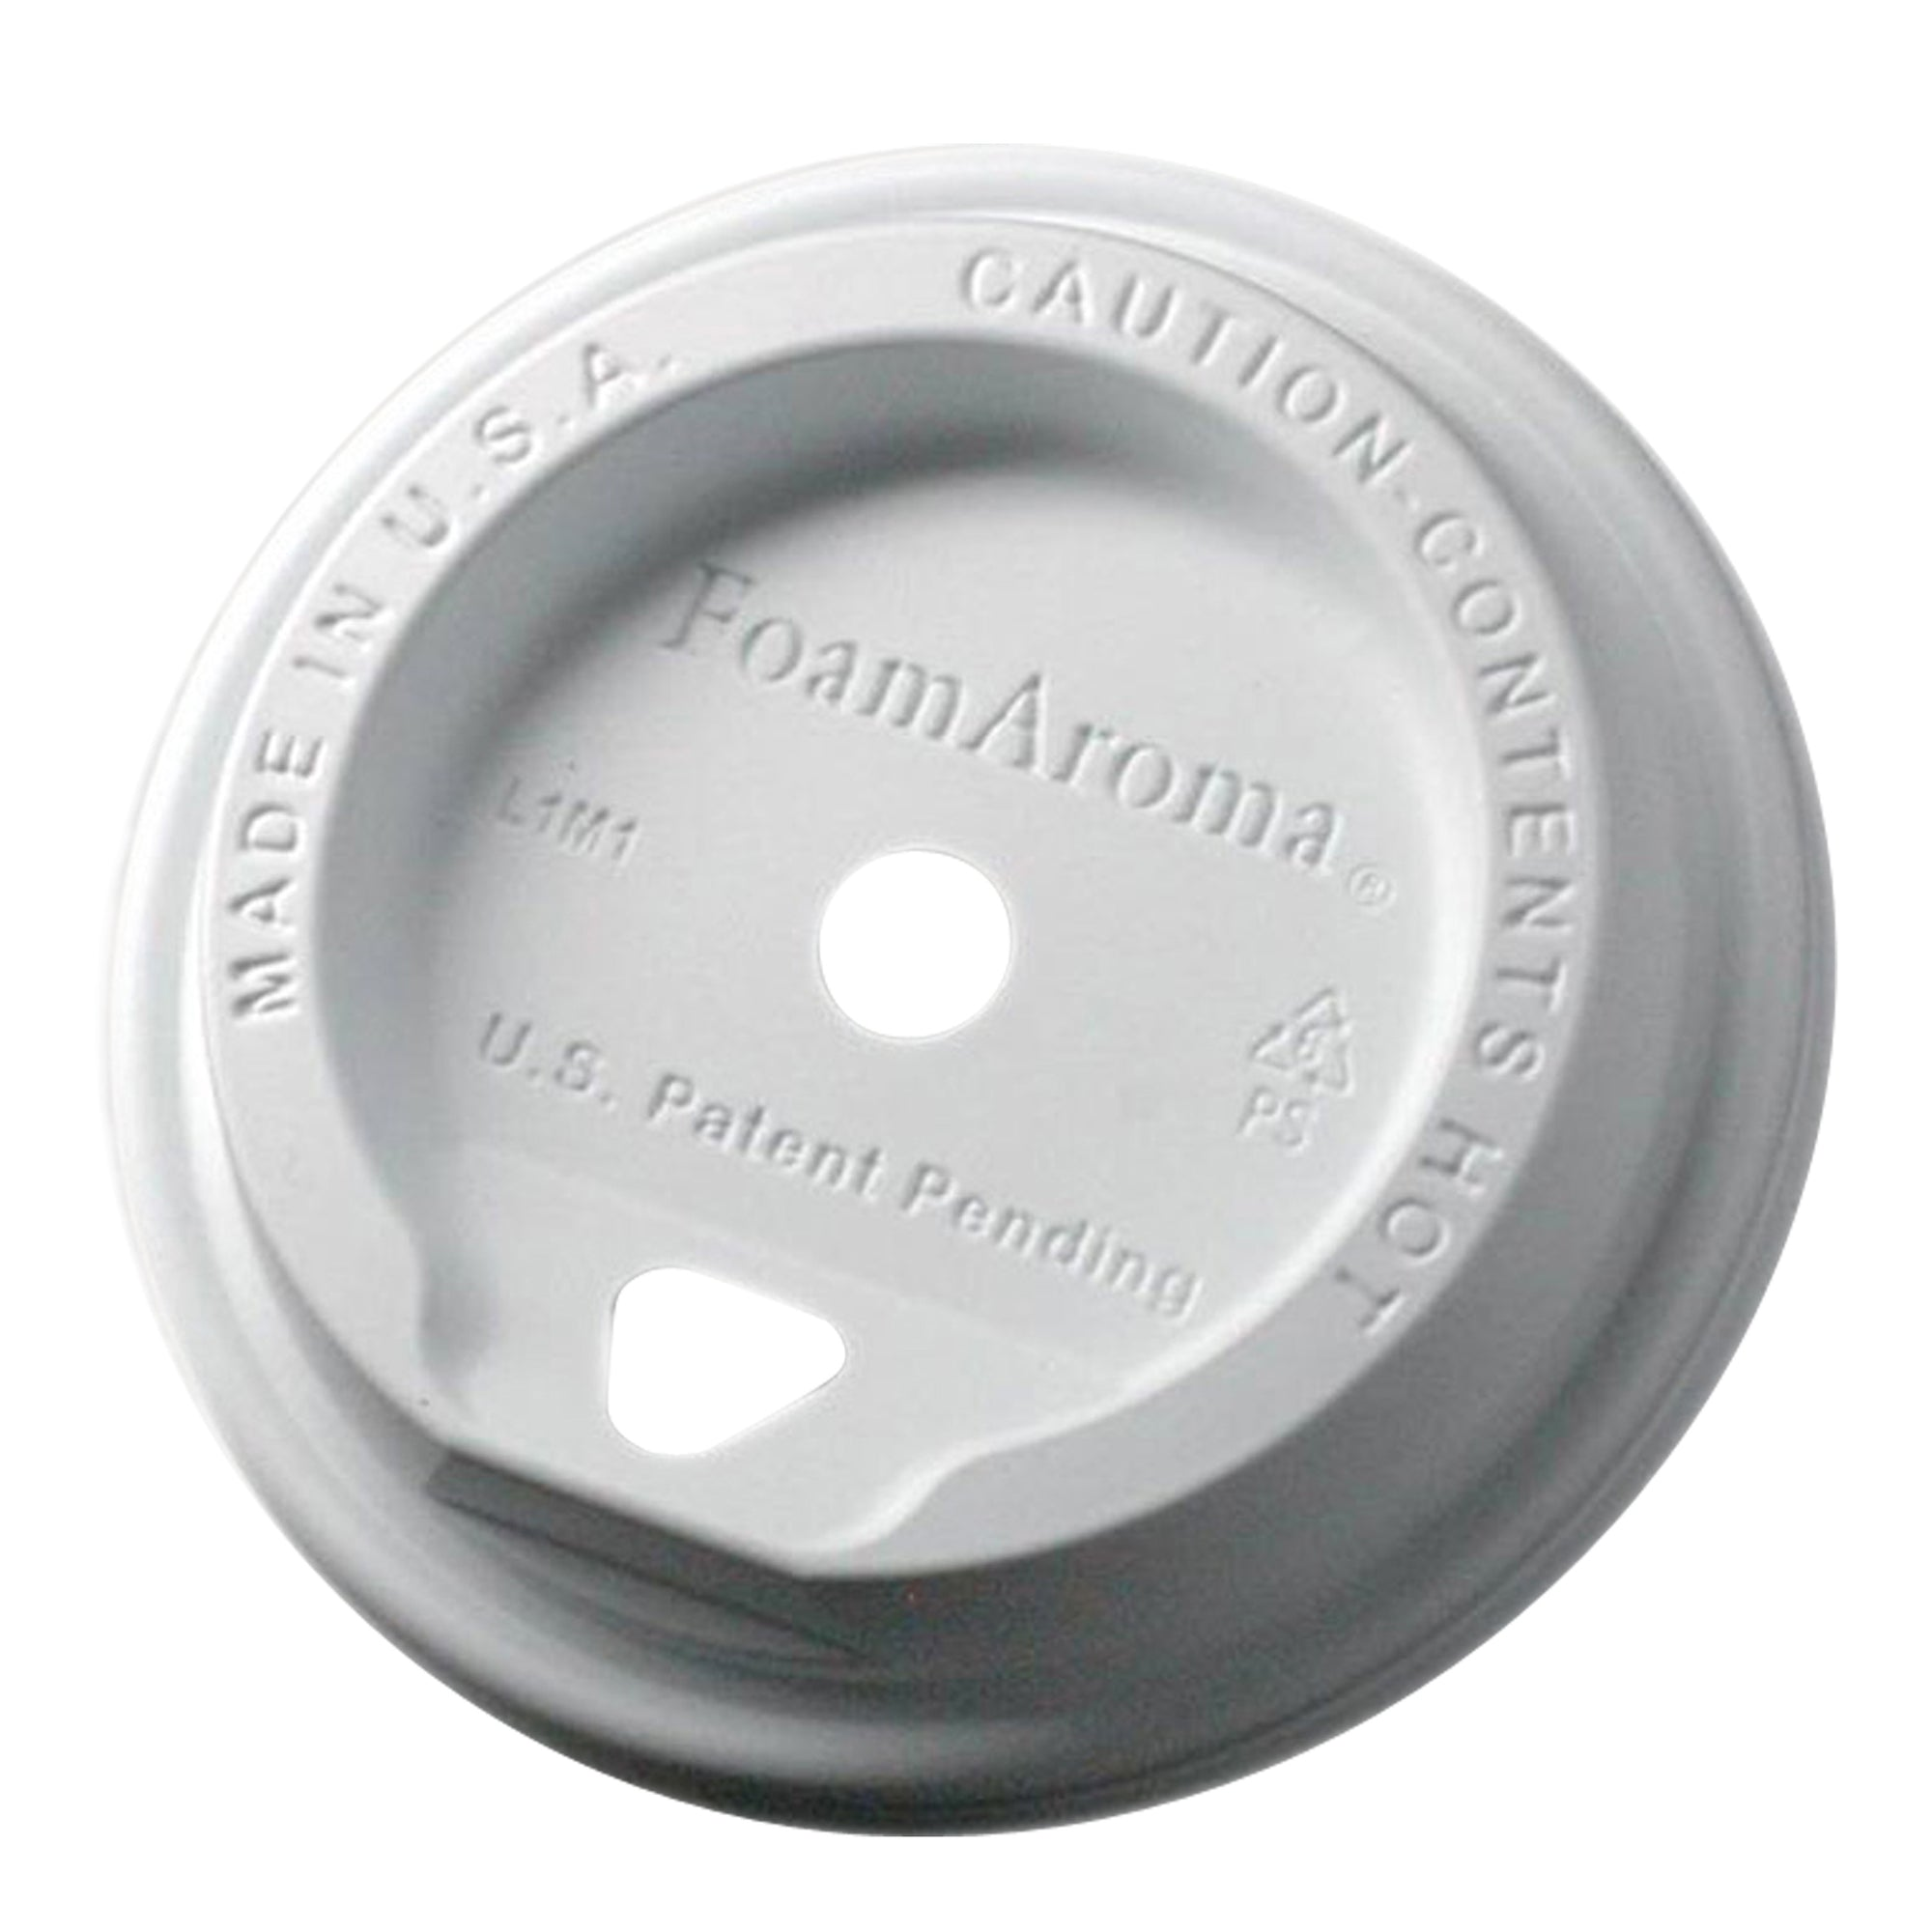 Take Away  Lid White 1000pcs - Foamaroma - Espresso Gear